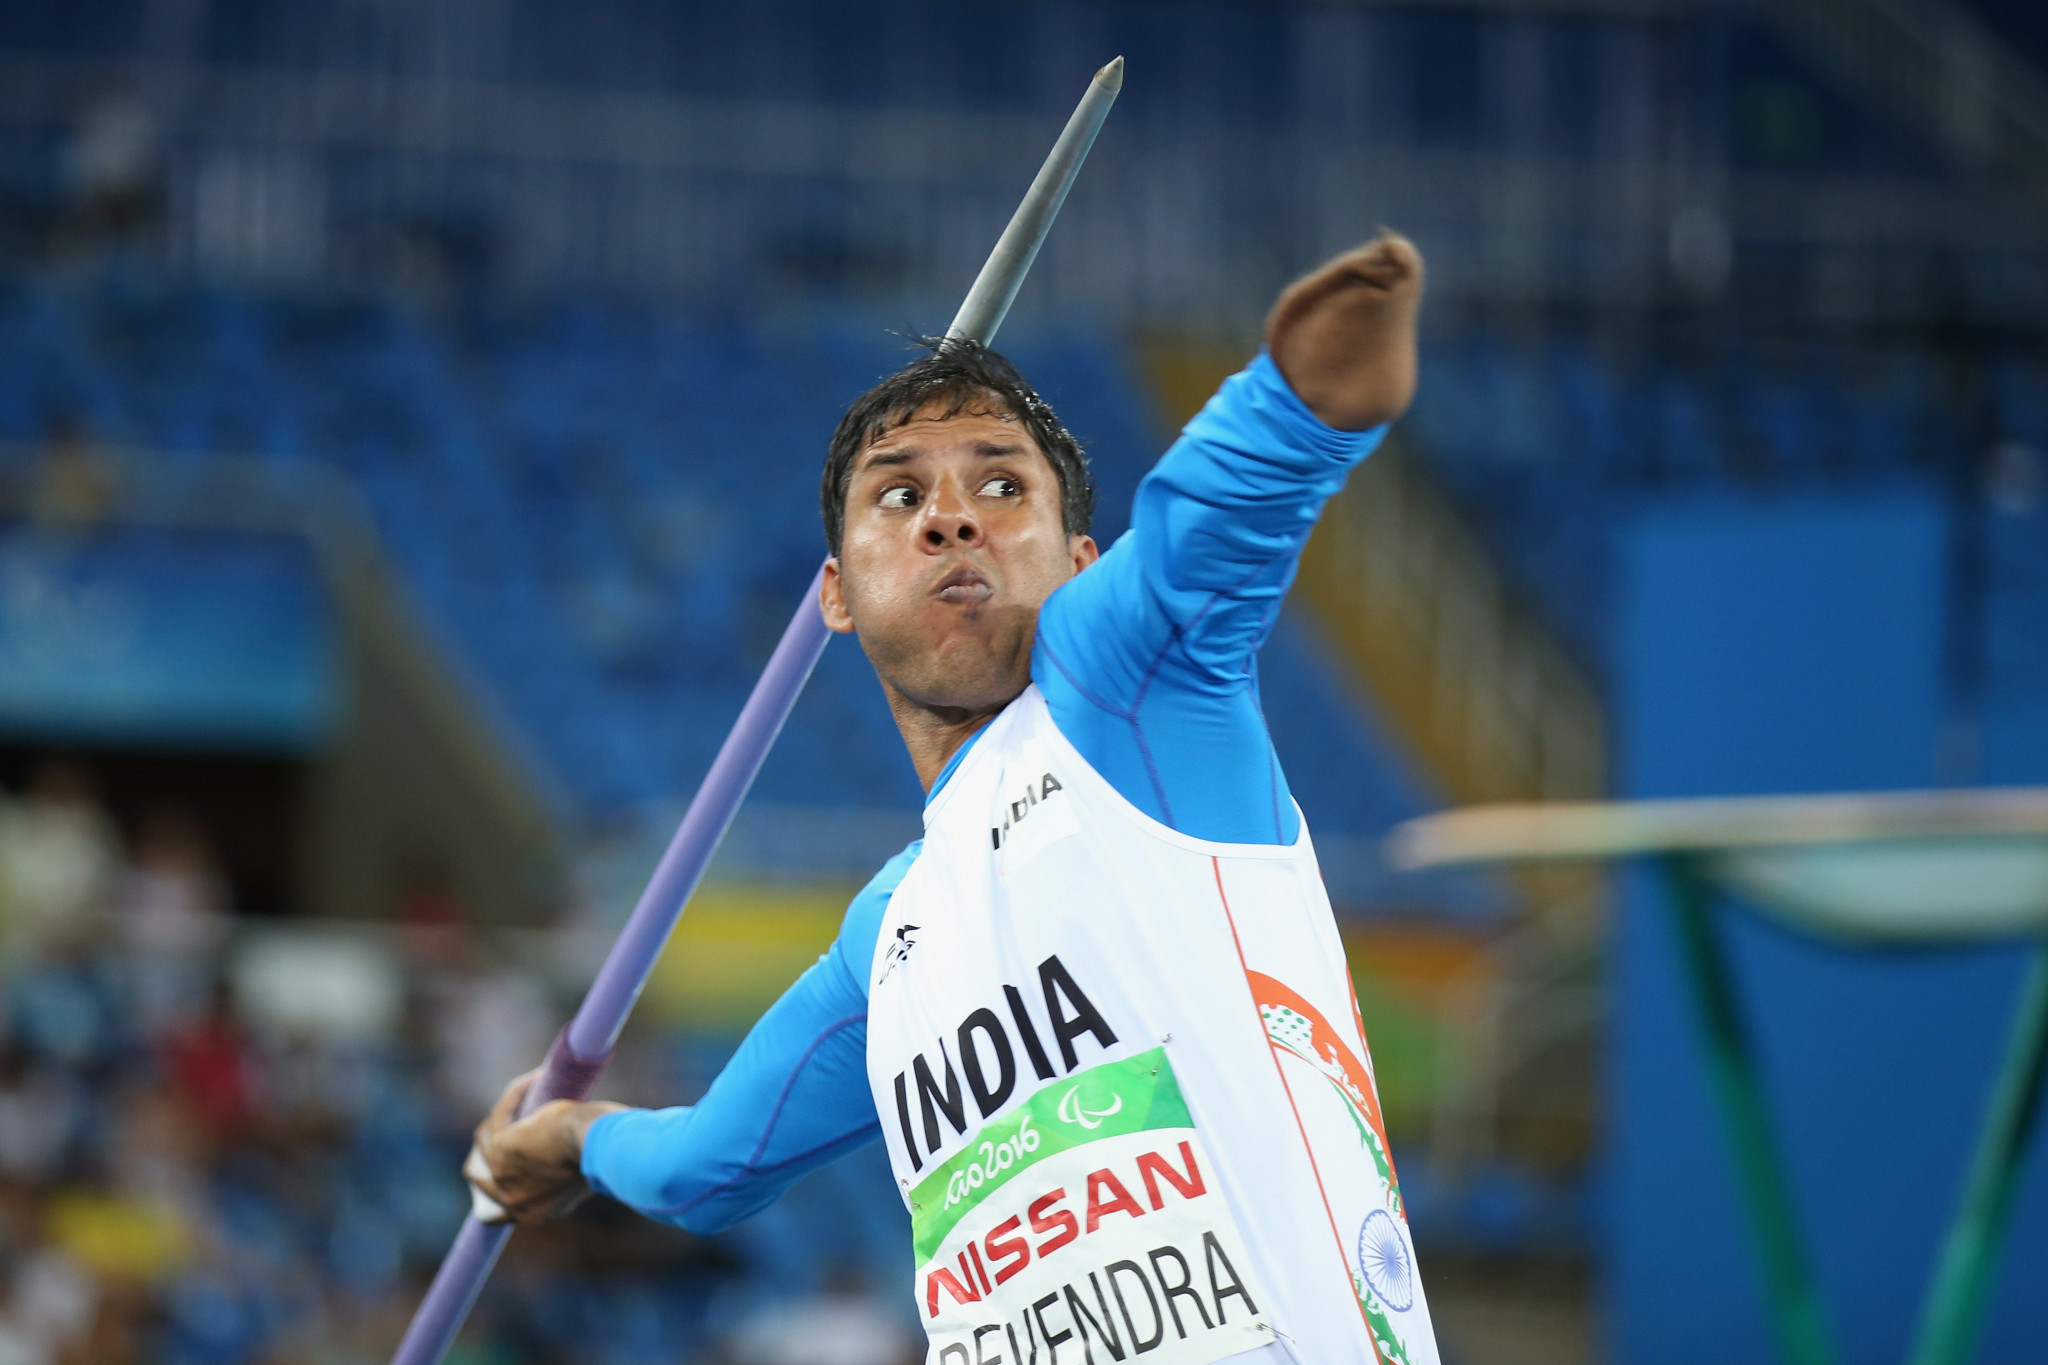 Paralympic Committee of India partners with SIDBI for Tokyo 2020 support